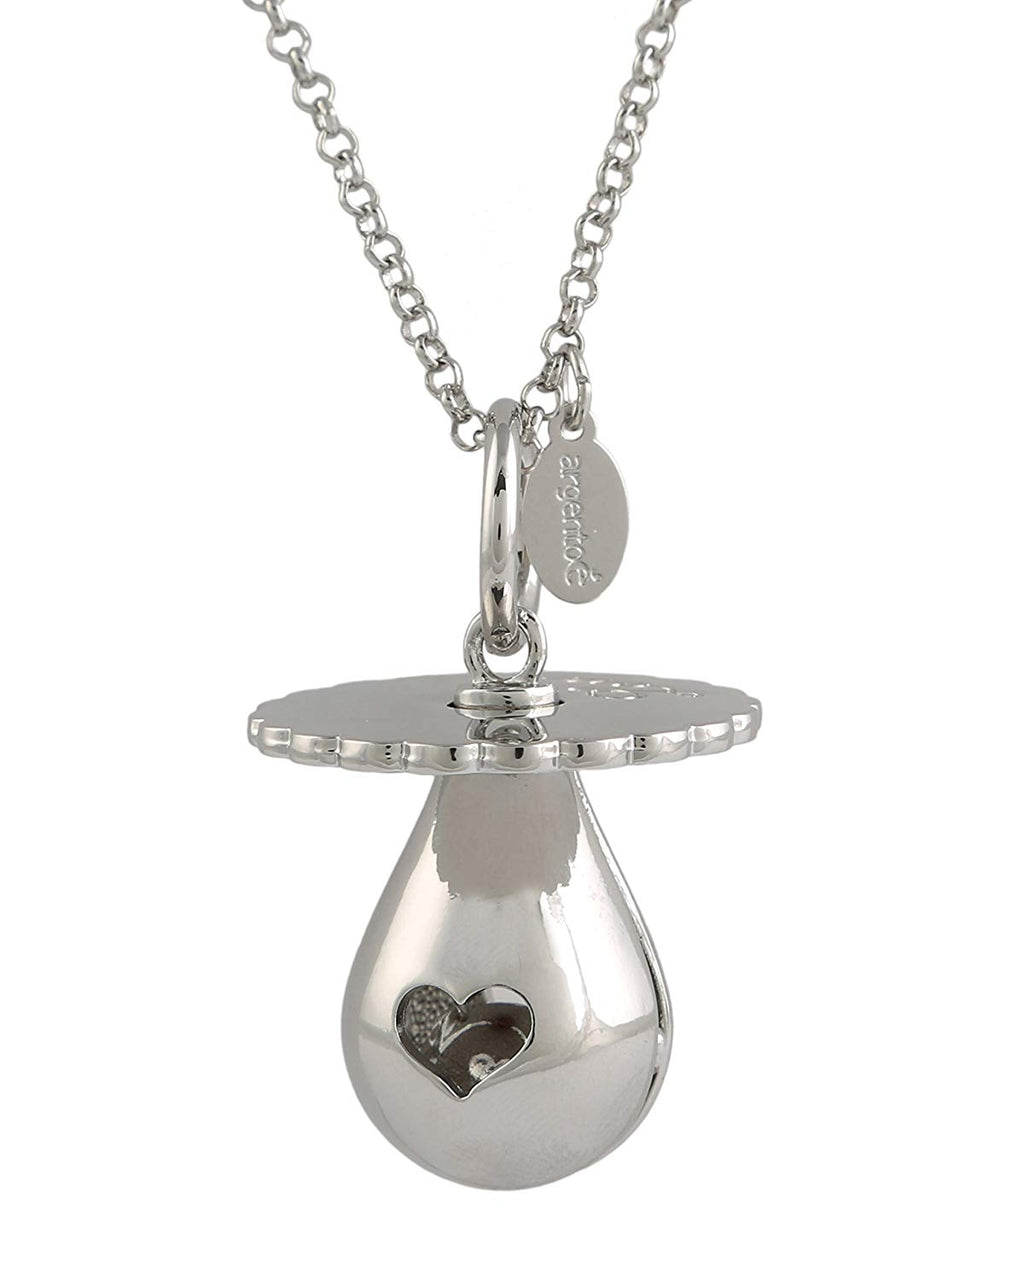 Ciuccio  Chiama Angeli BOLA Messicana rodiata  Silver Mother Care con Collana cm.100